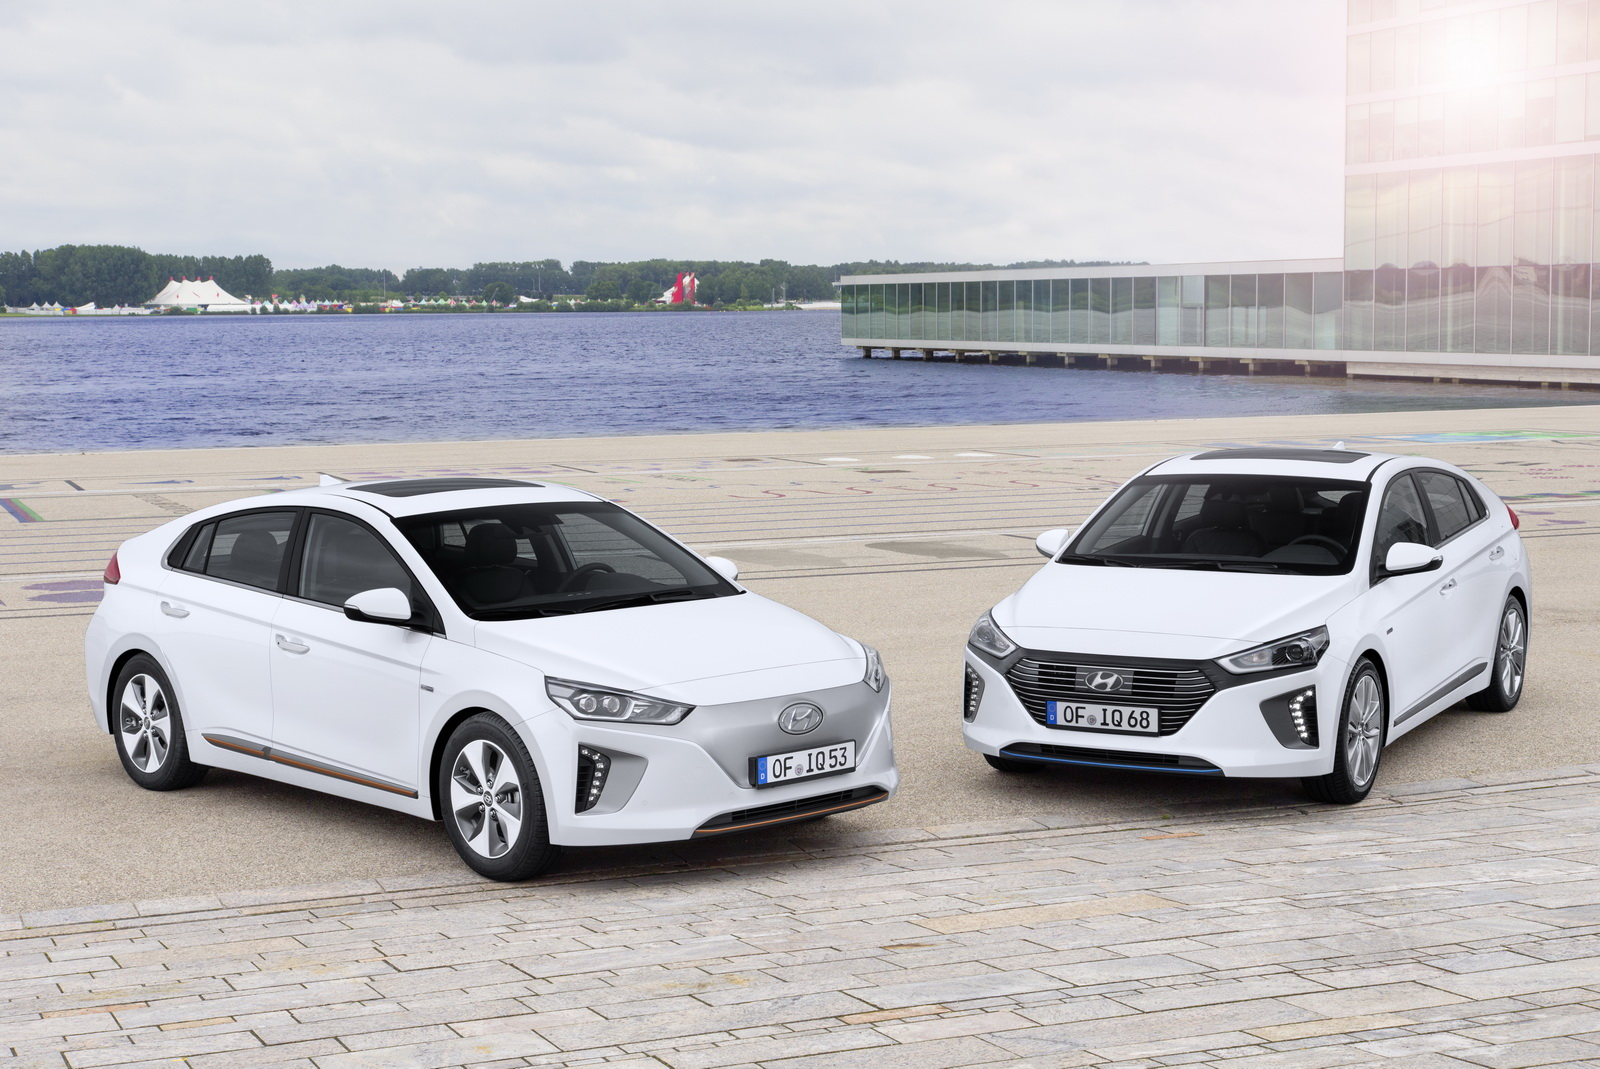 hyundai ioniq range detailed priced from 19 995 in the uk 88 pics. Black Bedroom Furniture Sets. Home Design Ideas